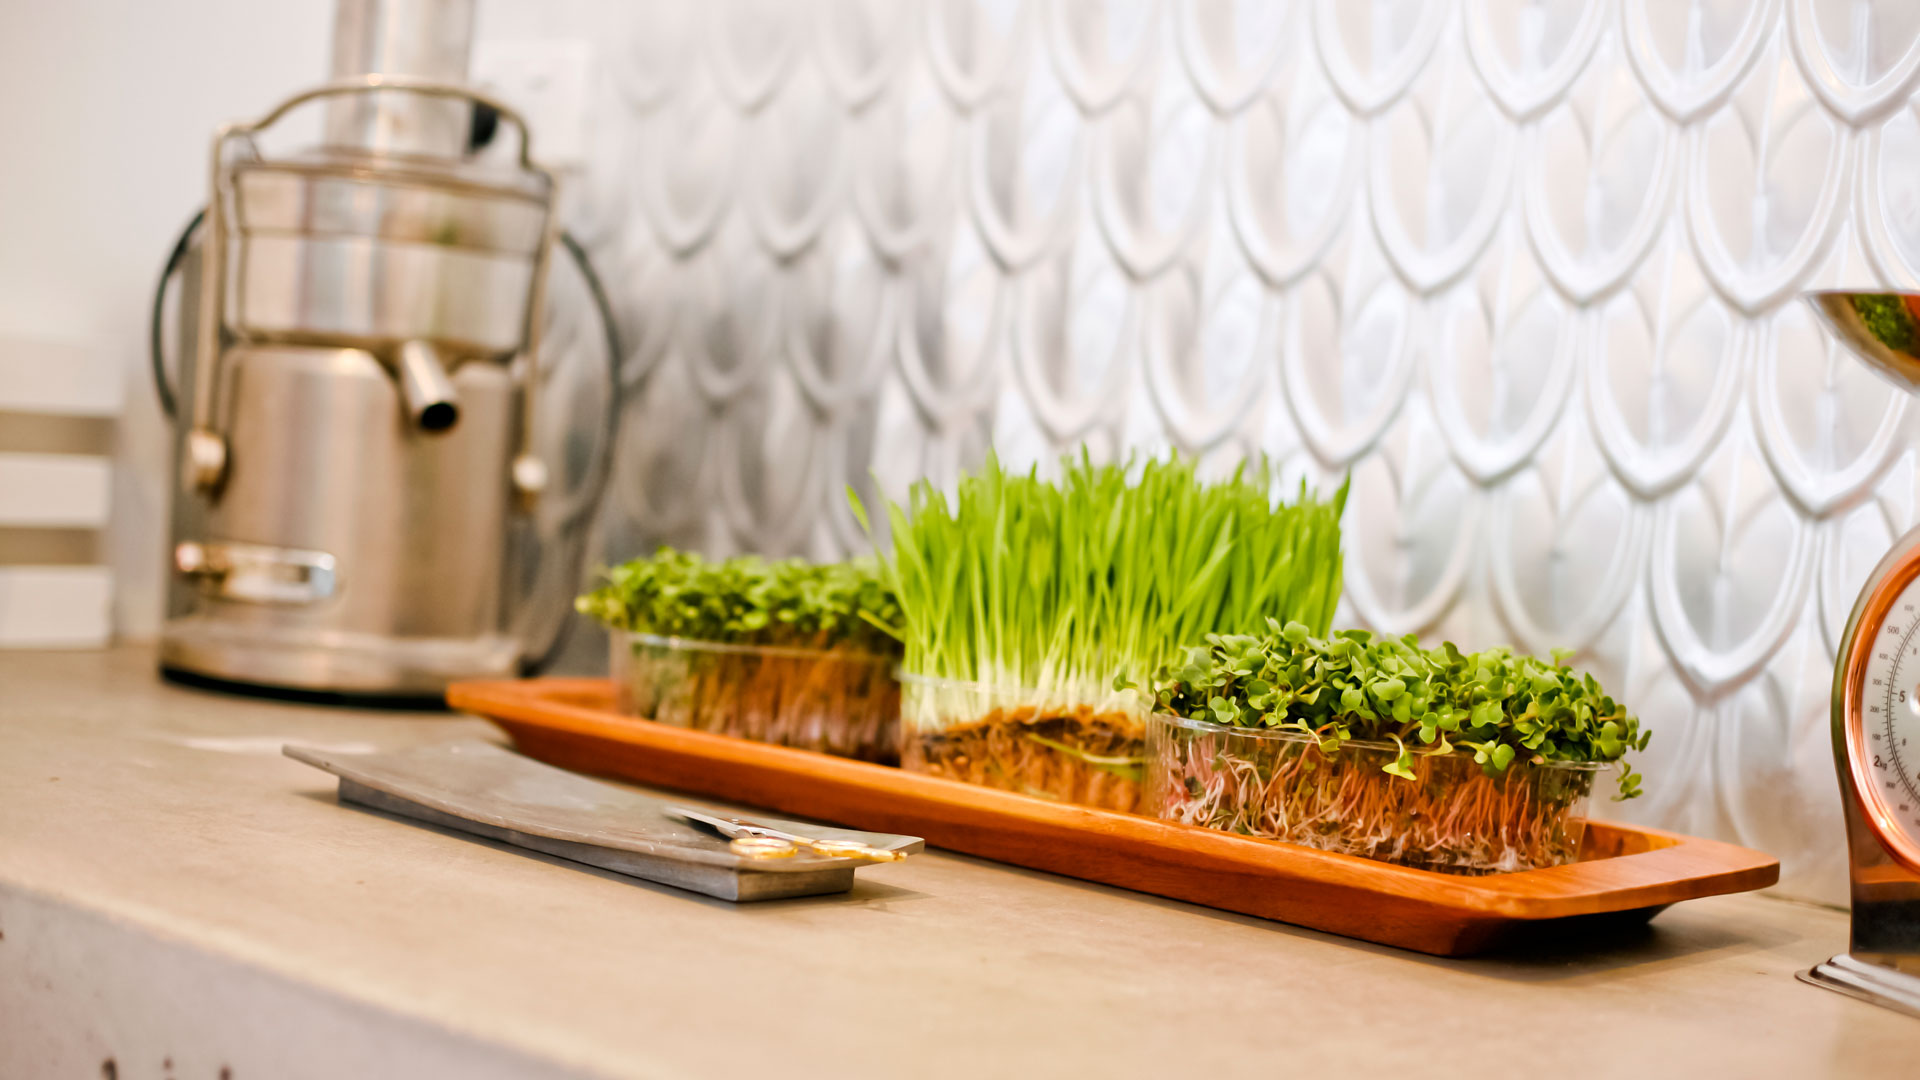 Live-Sprouts-at-home